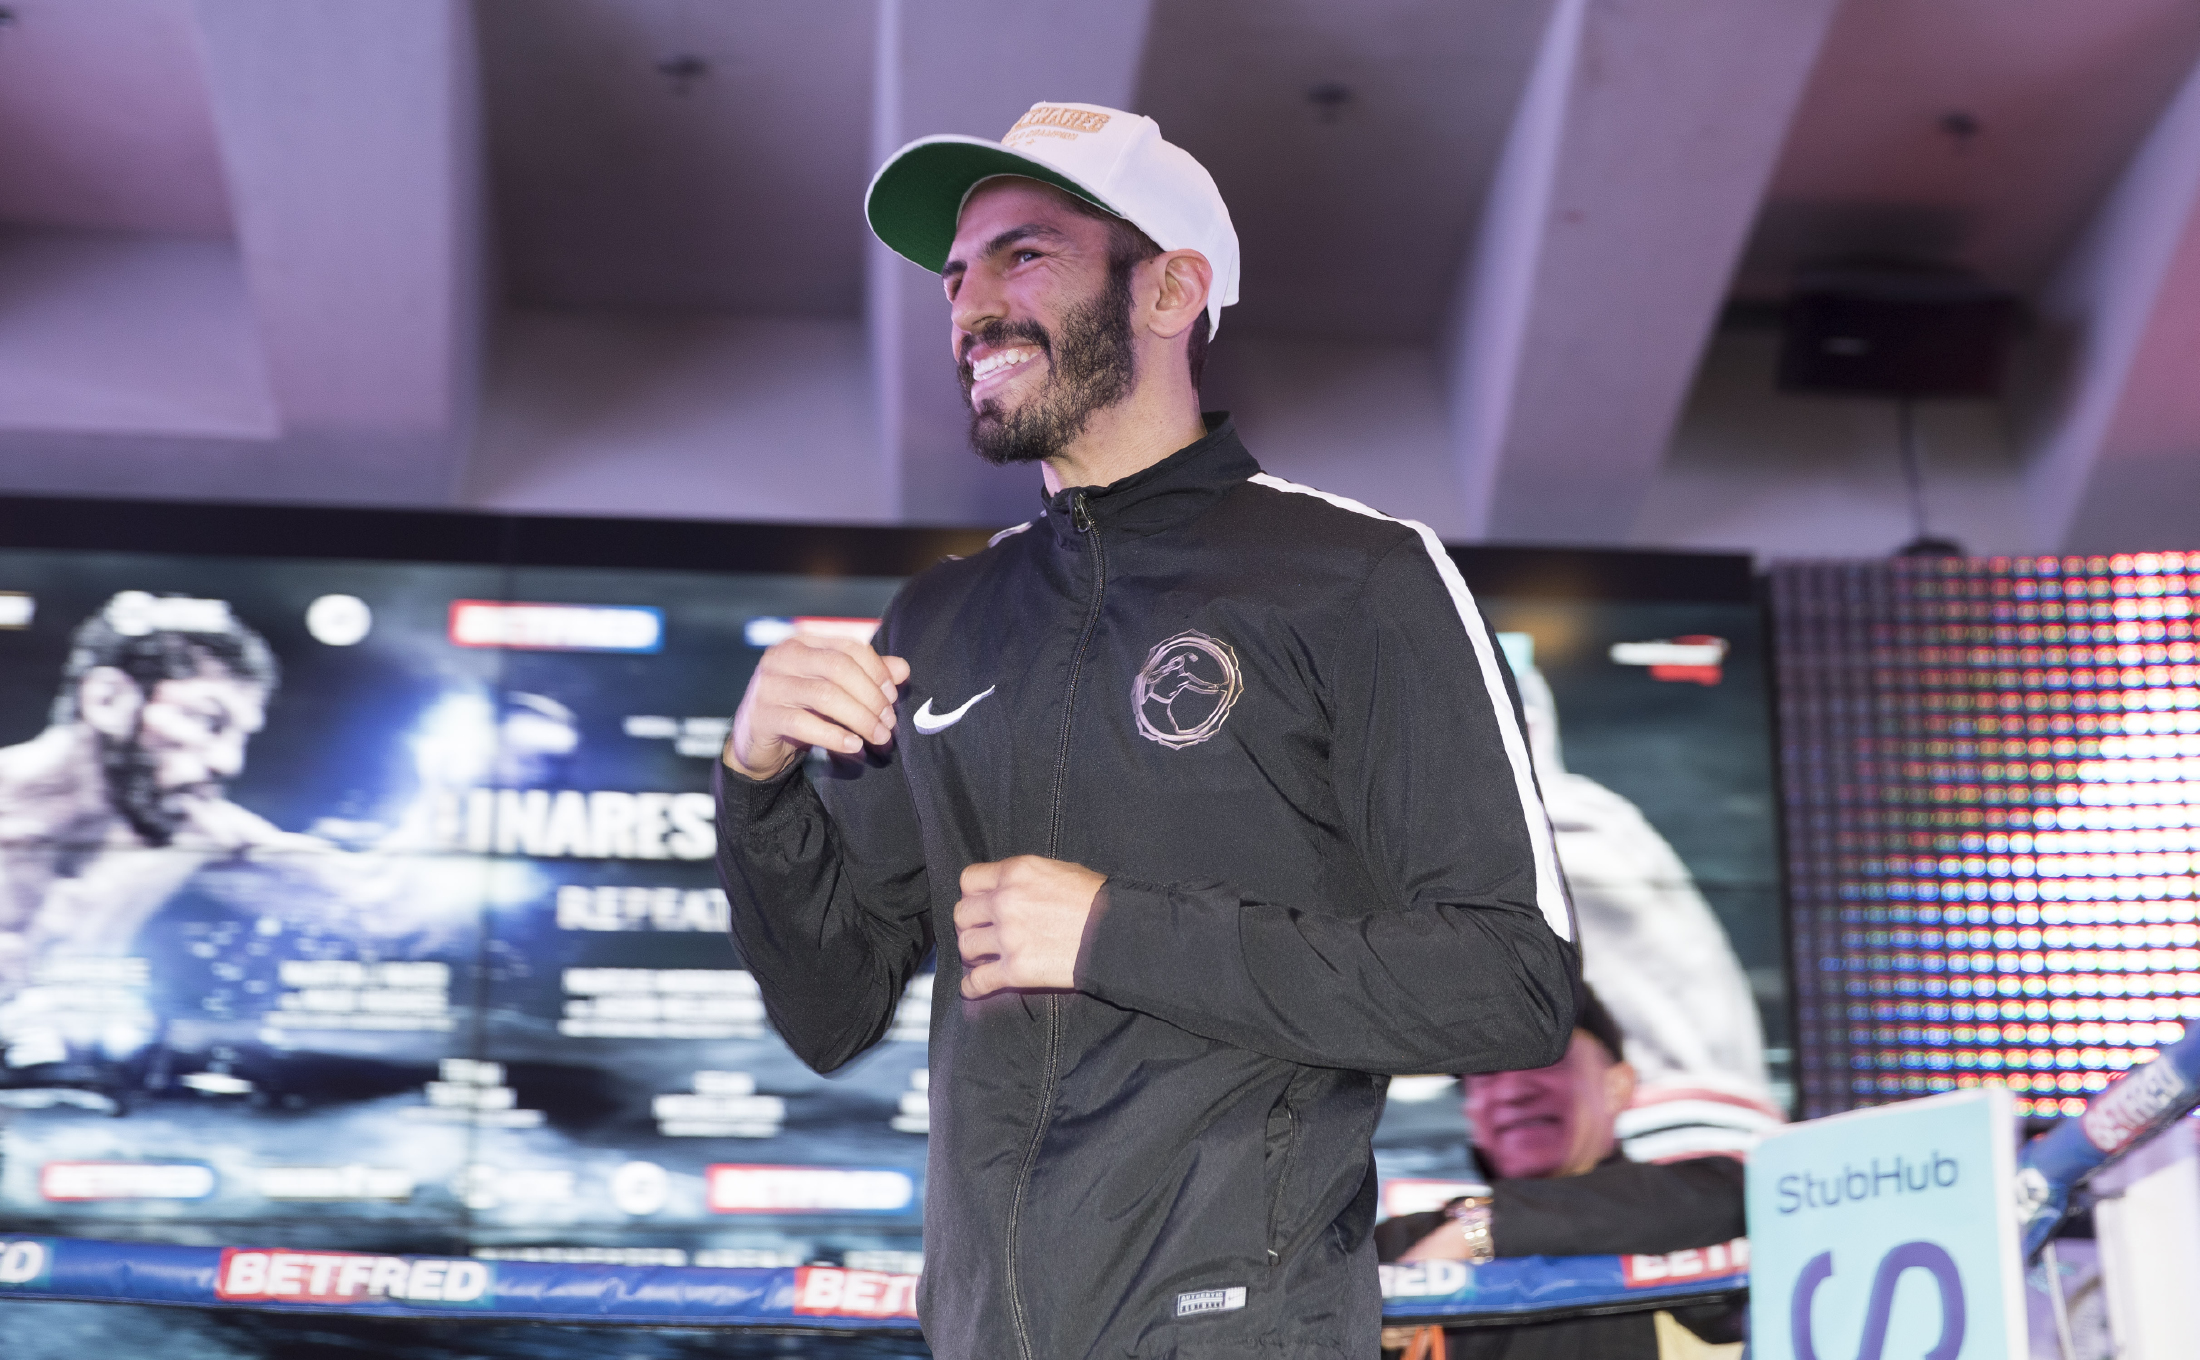 Jorge Linares Holds a public Open workout at the National Football museum Manchester. Linares is preparing for his fight against Anthony Crolla in a World Lightweight unification rematch on saturday night Live on Sky Sports. 25th March 2017 Picture By Mark Robinson.